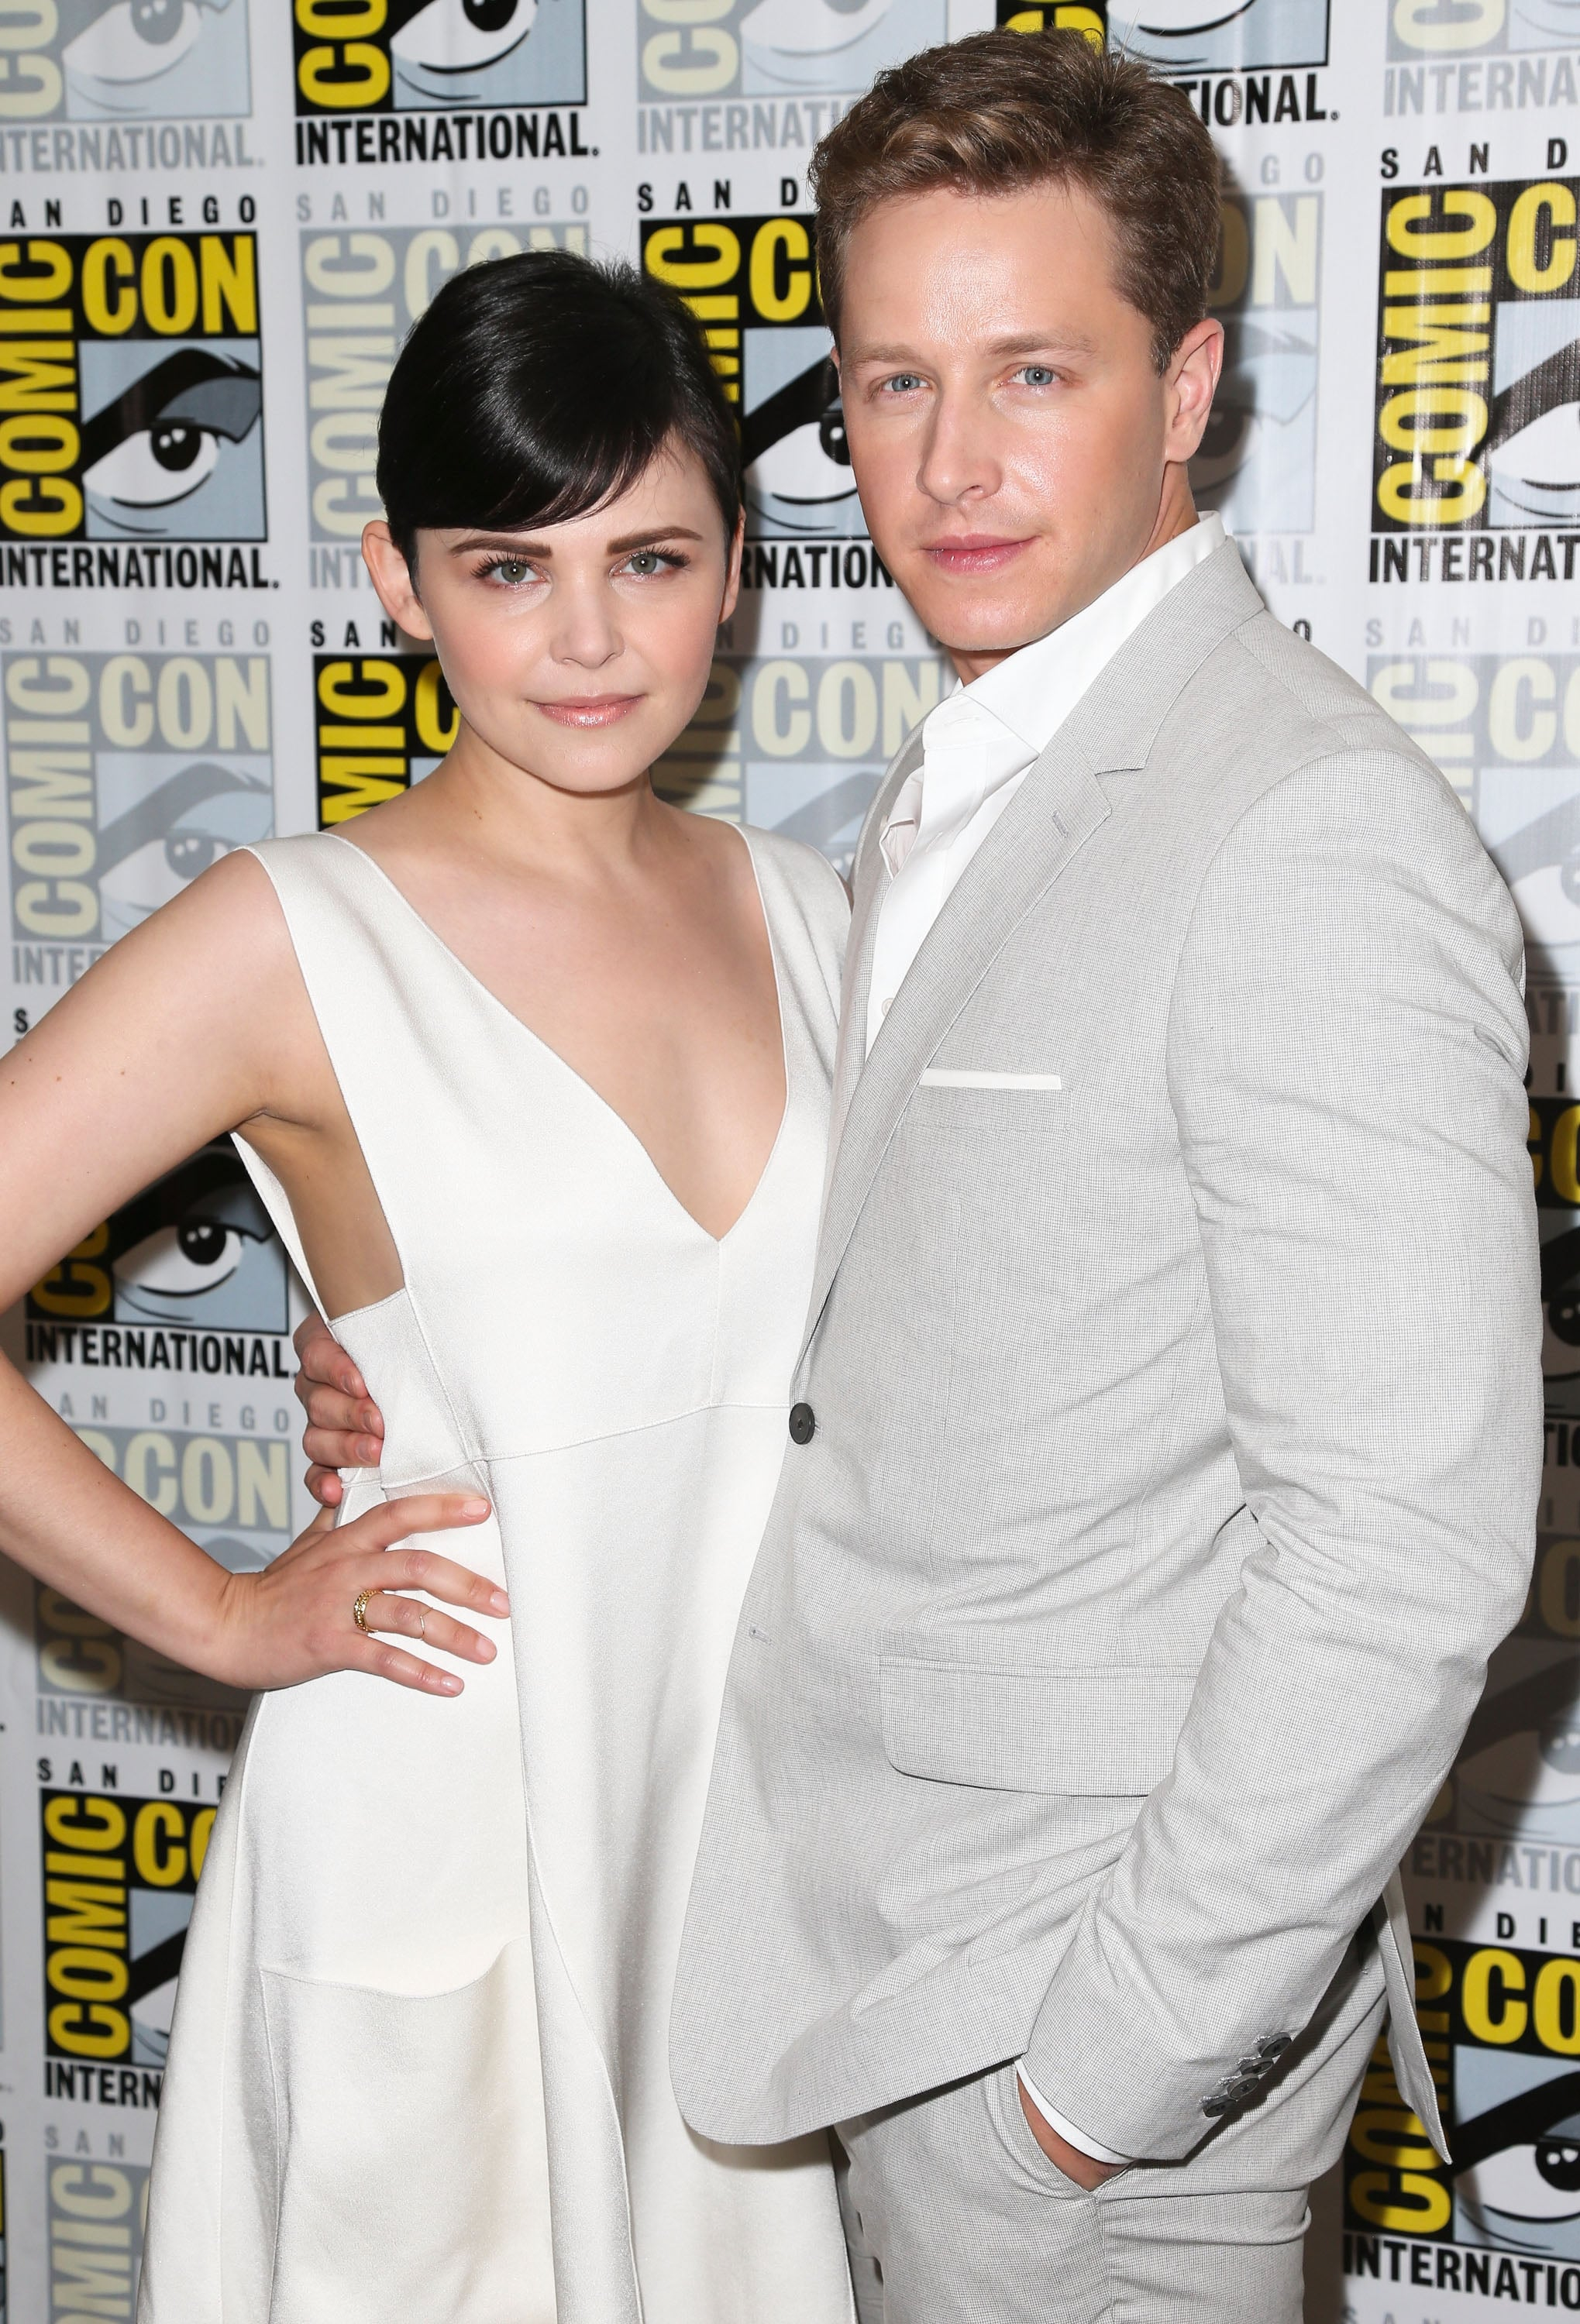 Snow White And Prince Charming Dating In Real Life